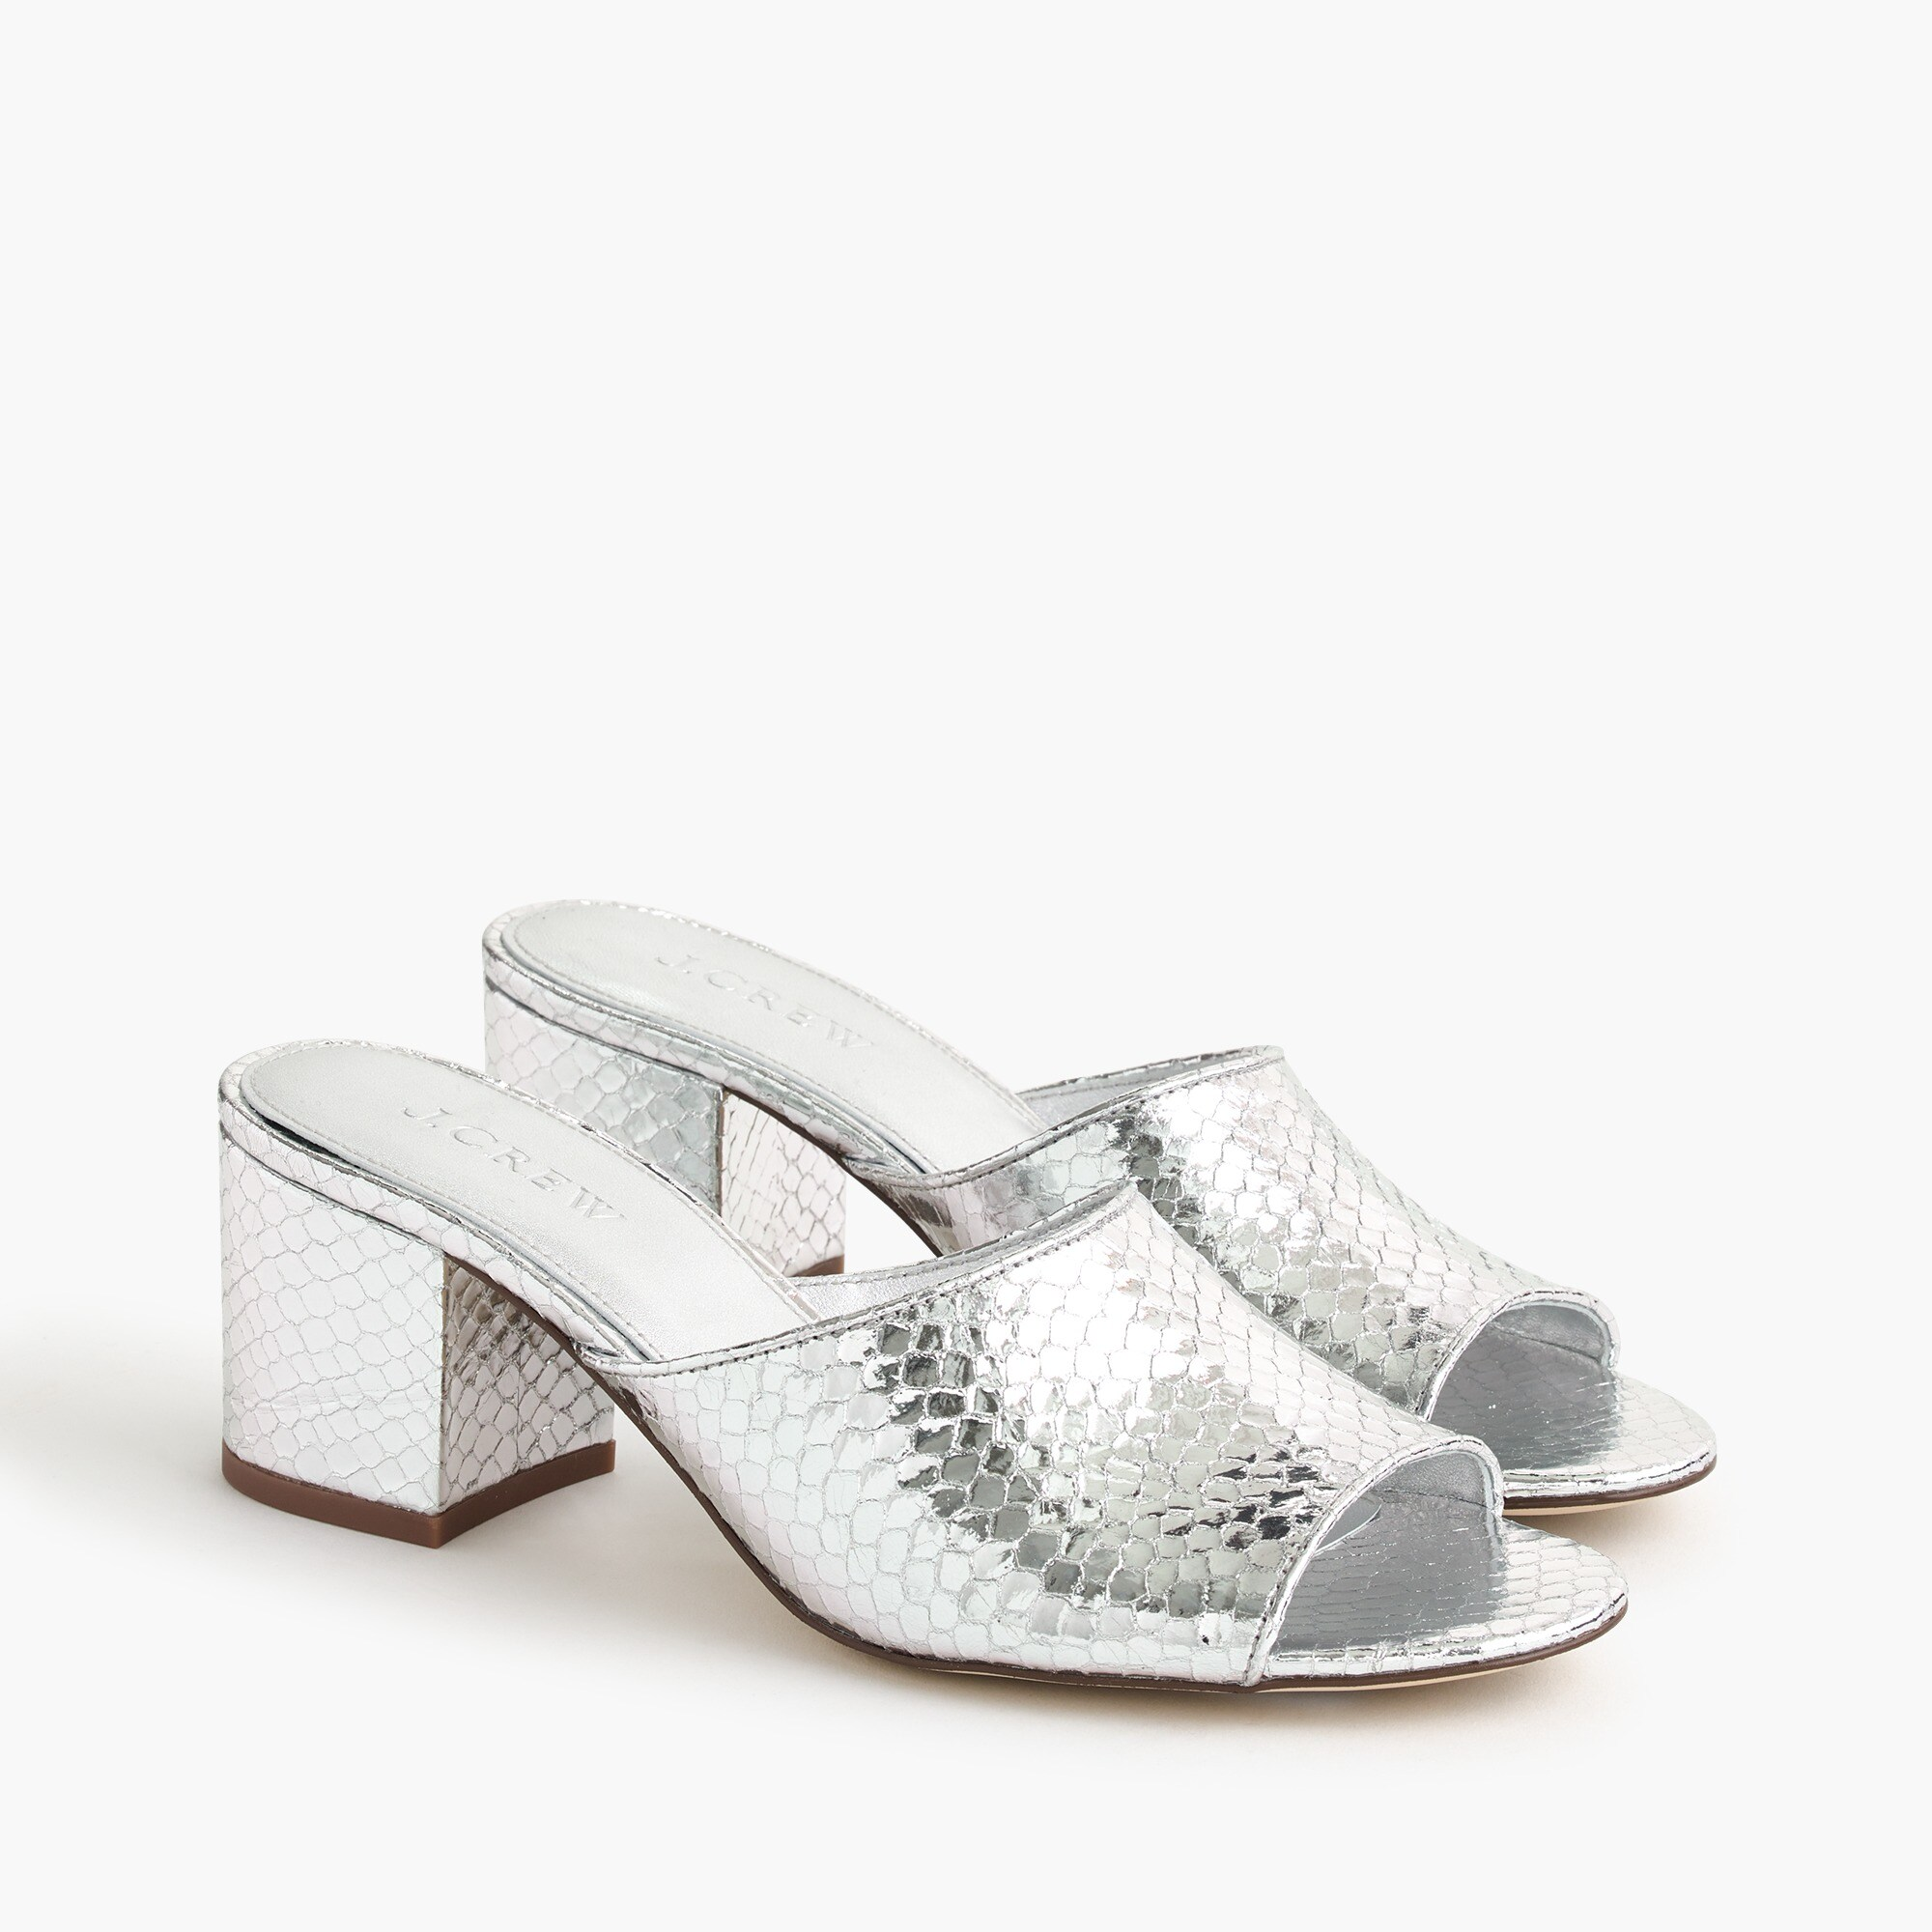 All-day mule (60mm) in metallic snakeskin women new arrivals c